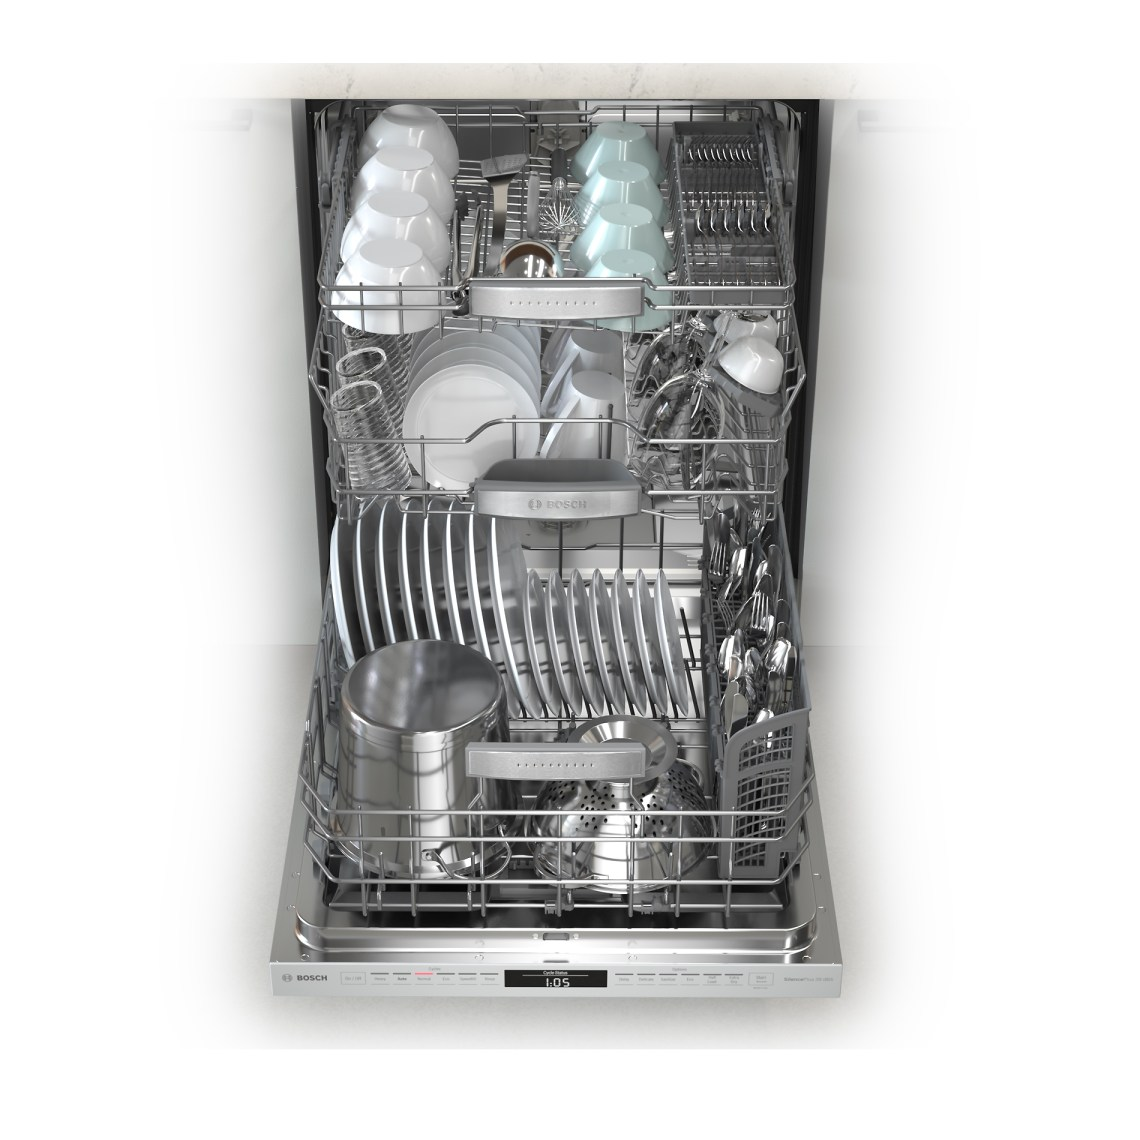 Best Dishwasher Brand and Why You Need a Bosch - Best Buy Bloggers